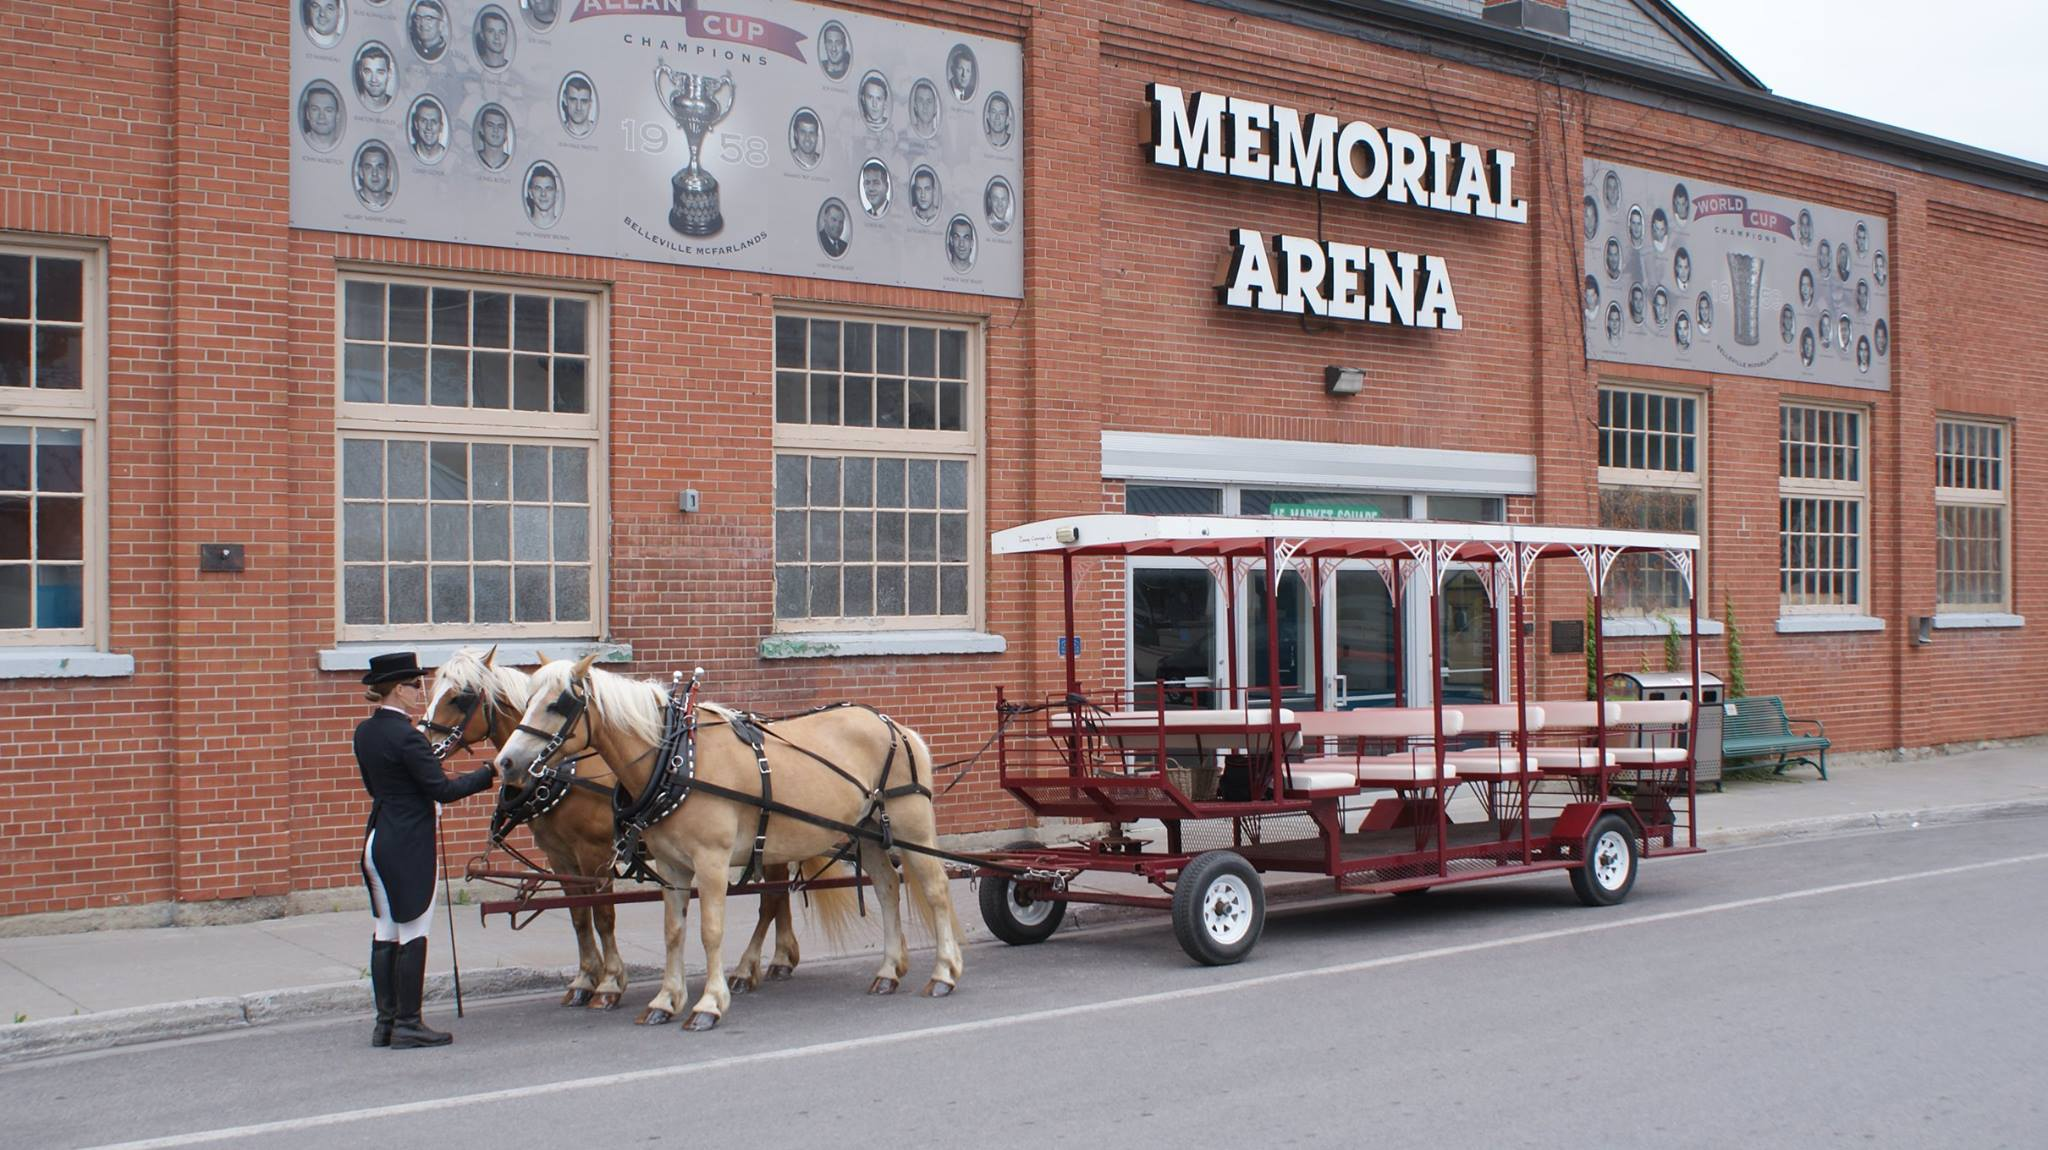 horses pulling a carriage for tours in Belleville